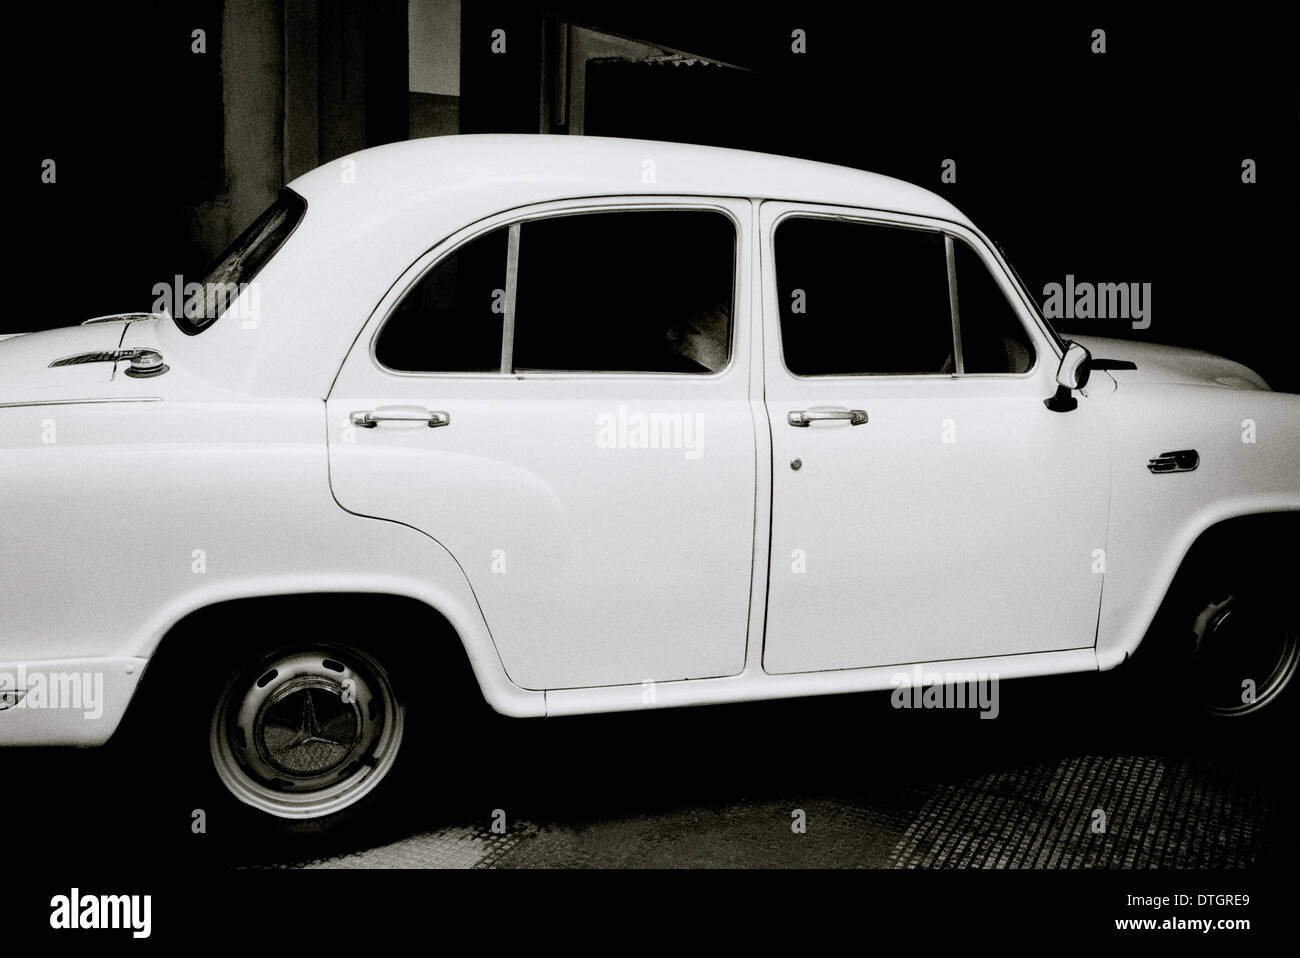 Travel Photography - Hindustan Ambassador car in Calcutta Kolkata in West Bengal in India in South Asia. Transport Car Cars - Stock Image